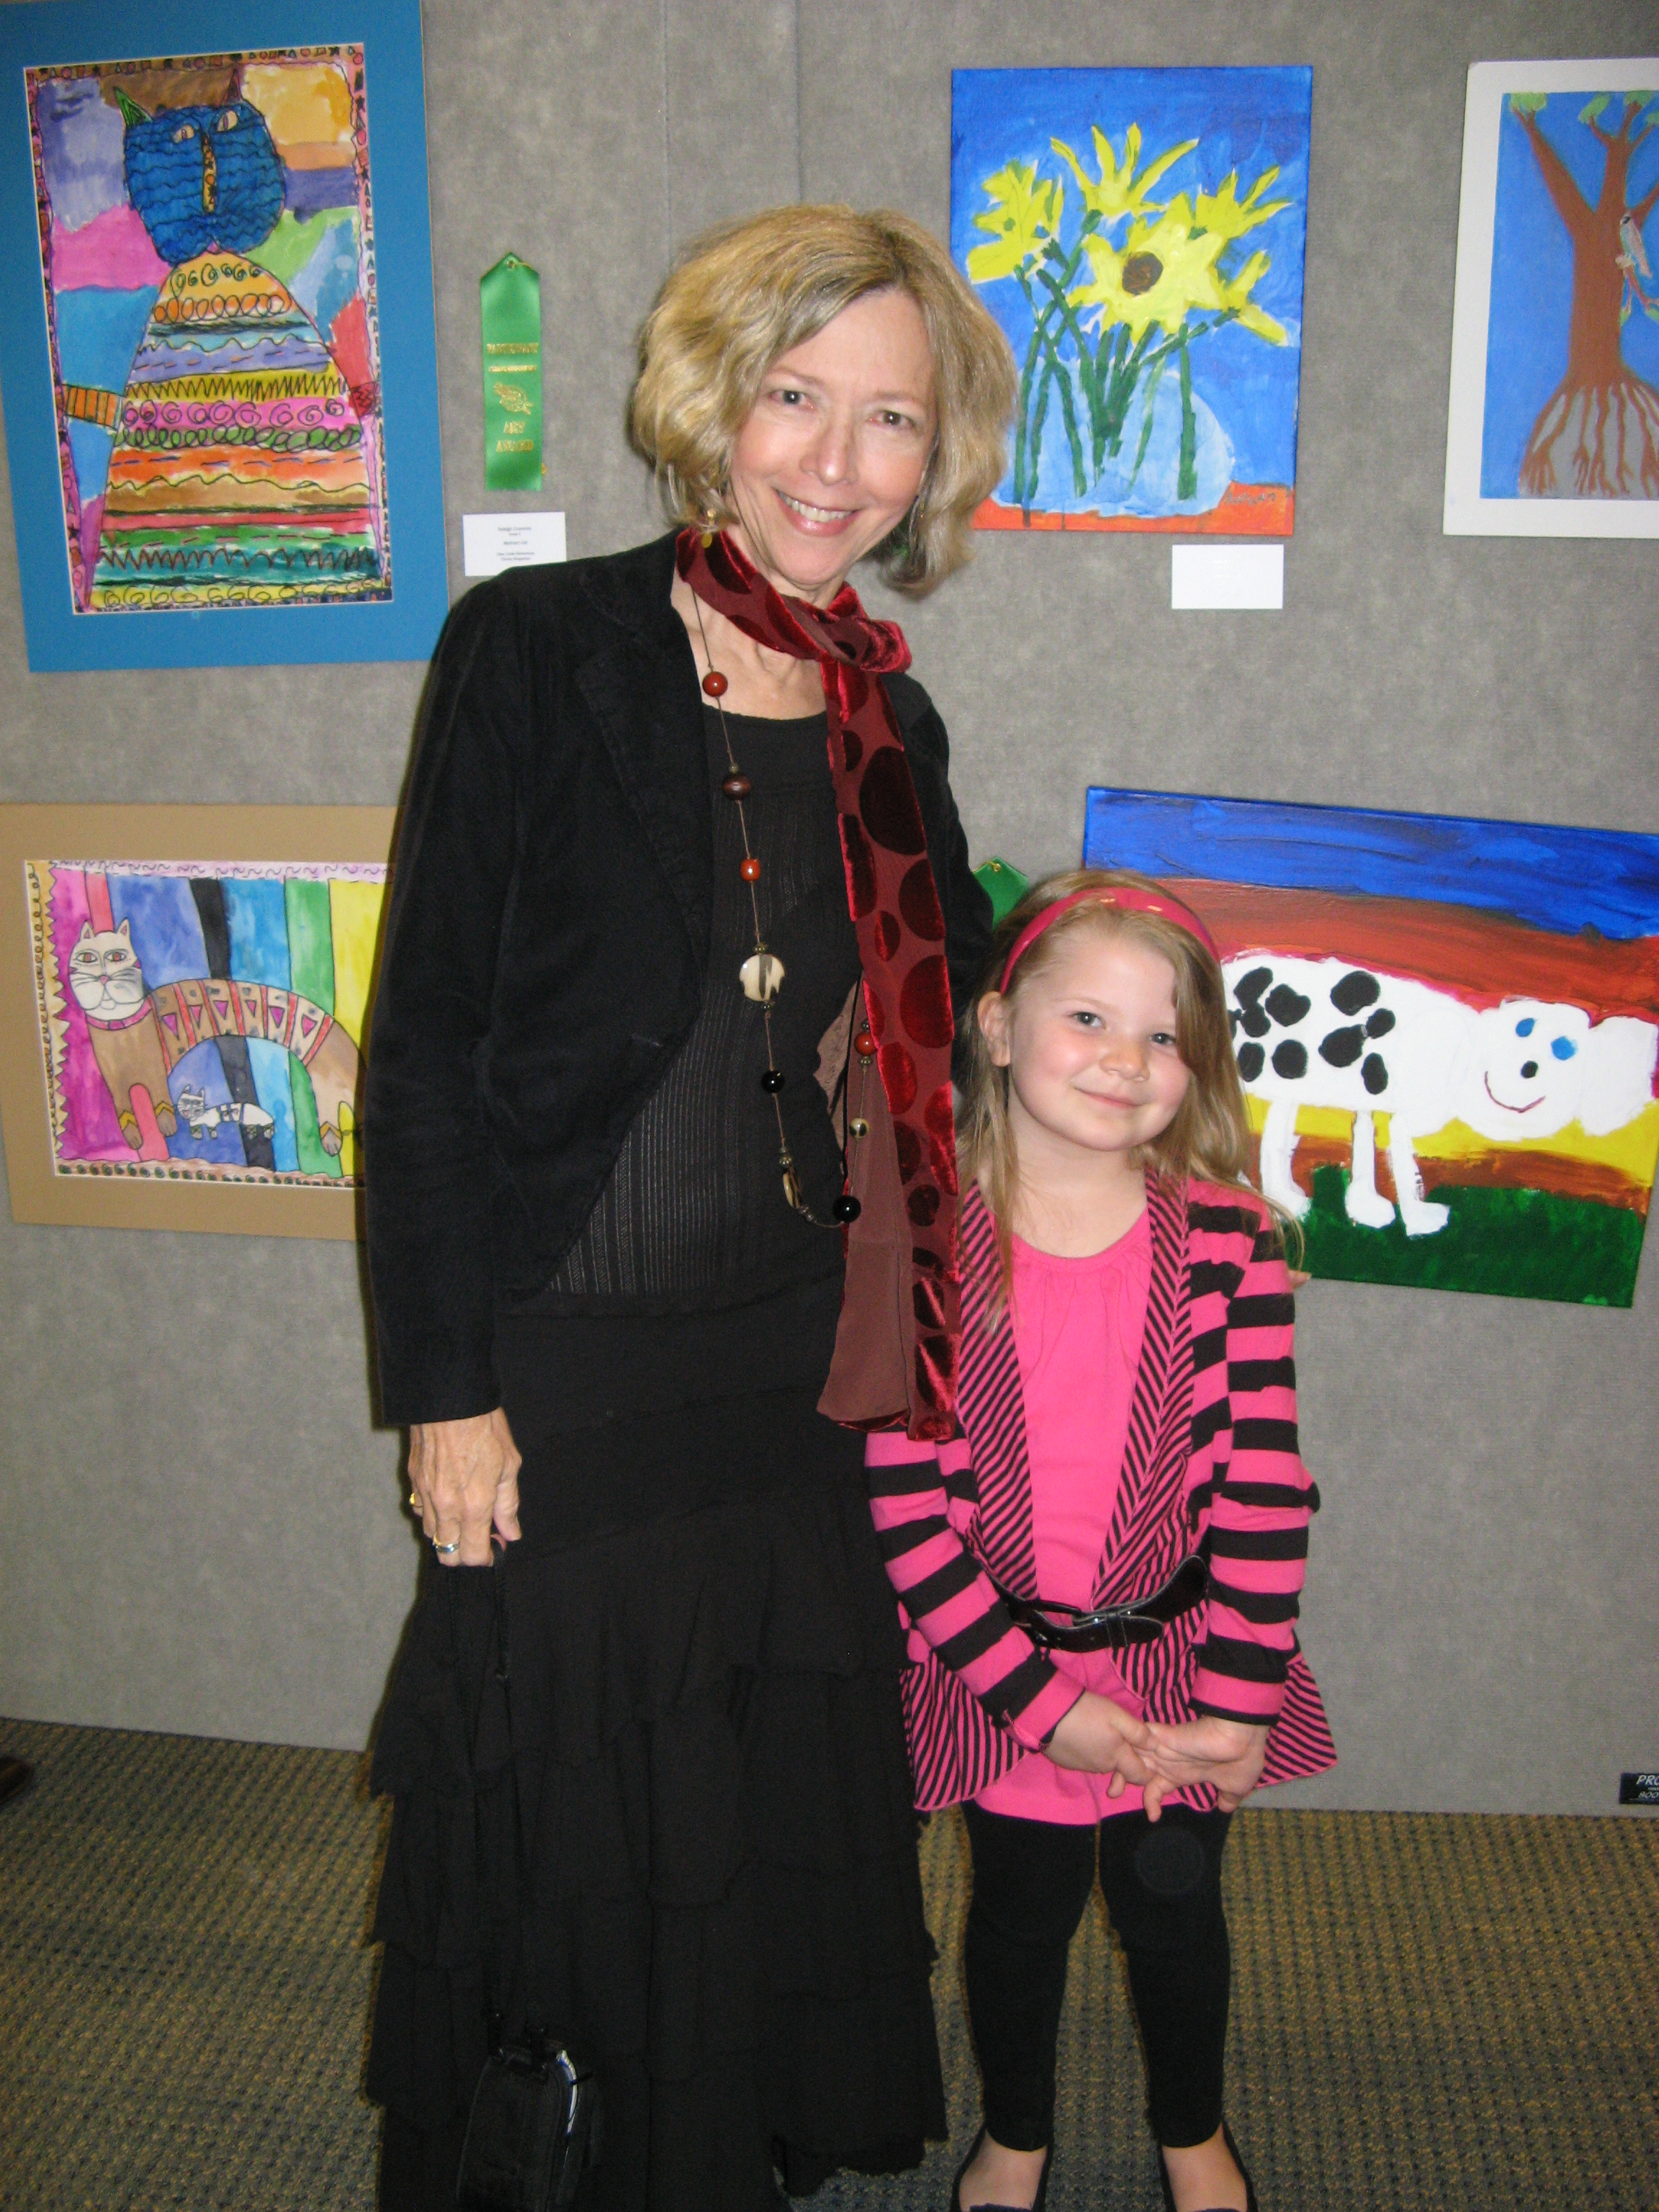 The Arts Council Elementary Age Exhibition